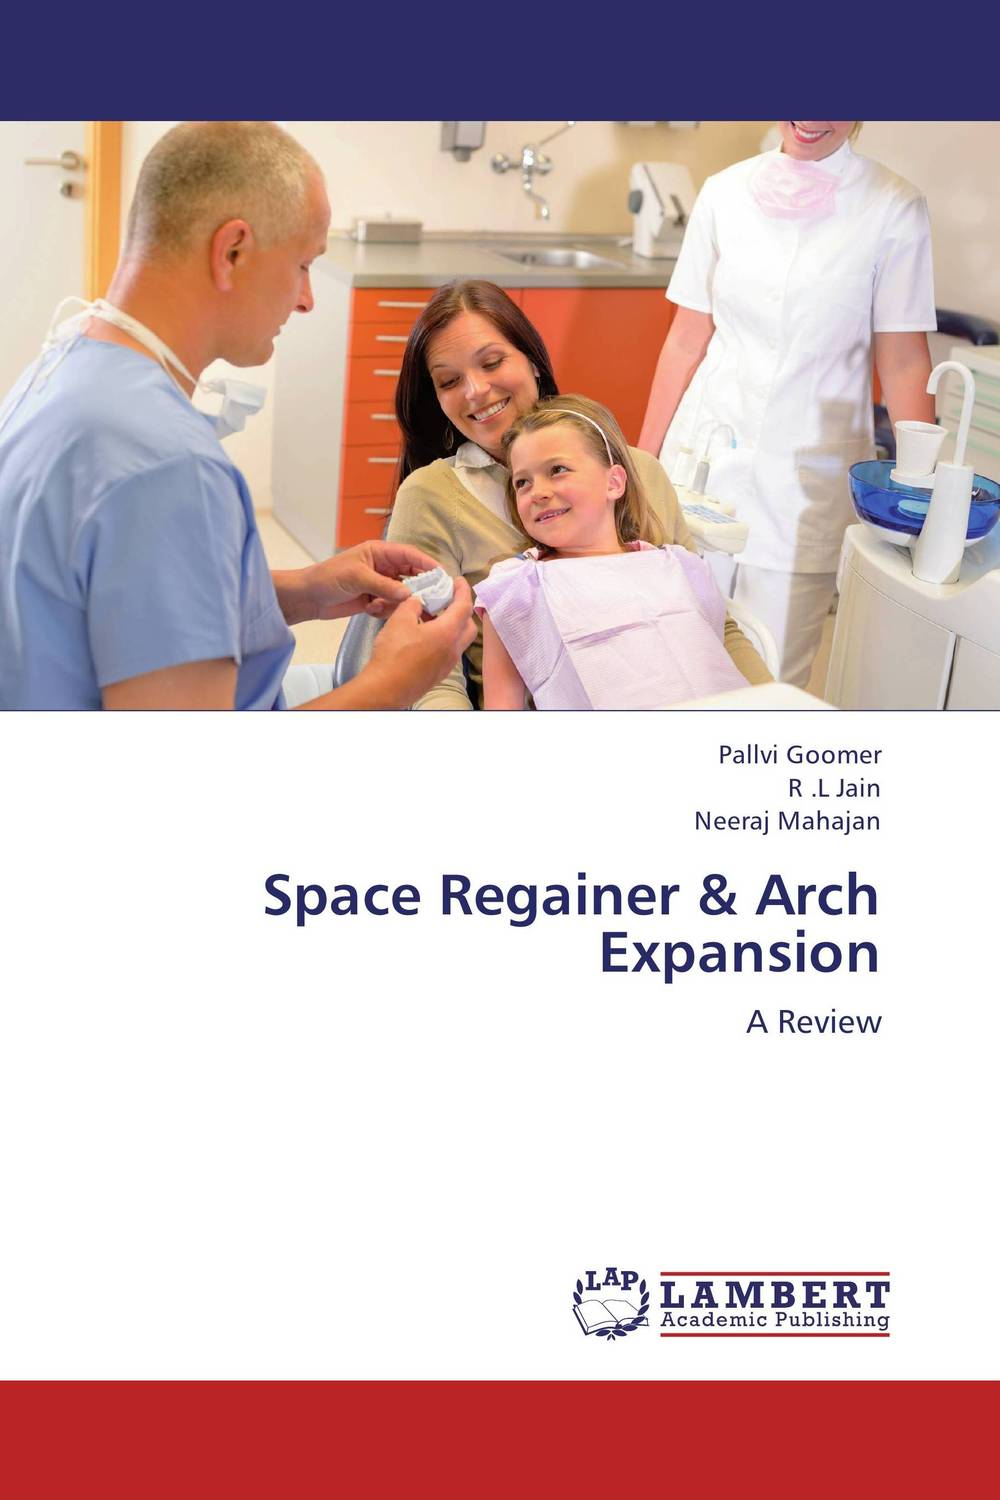 Space Regainer & Arch Expansion growth in cleft lip and palate subjects